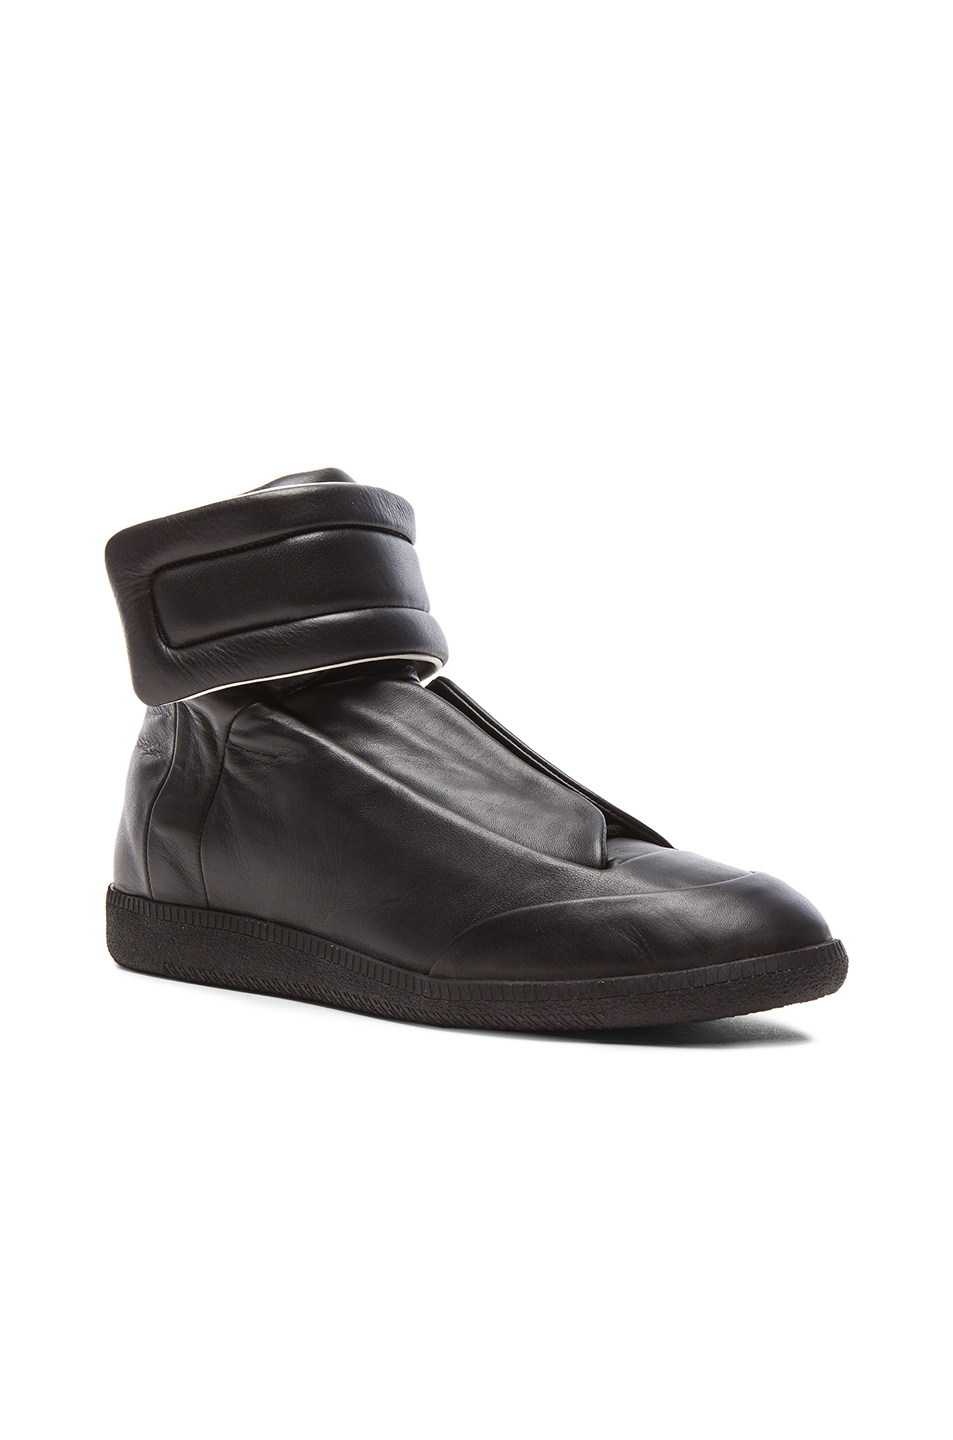 Maison Margiela Future Leather High Tops in Black